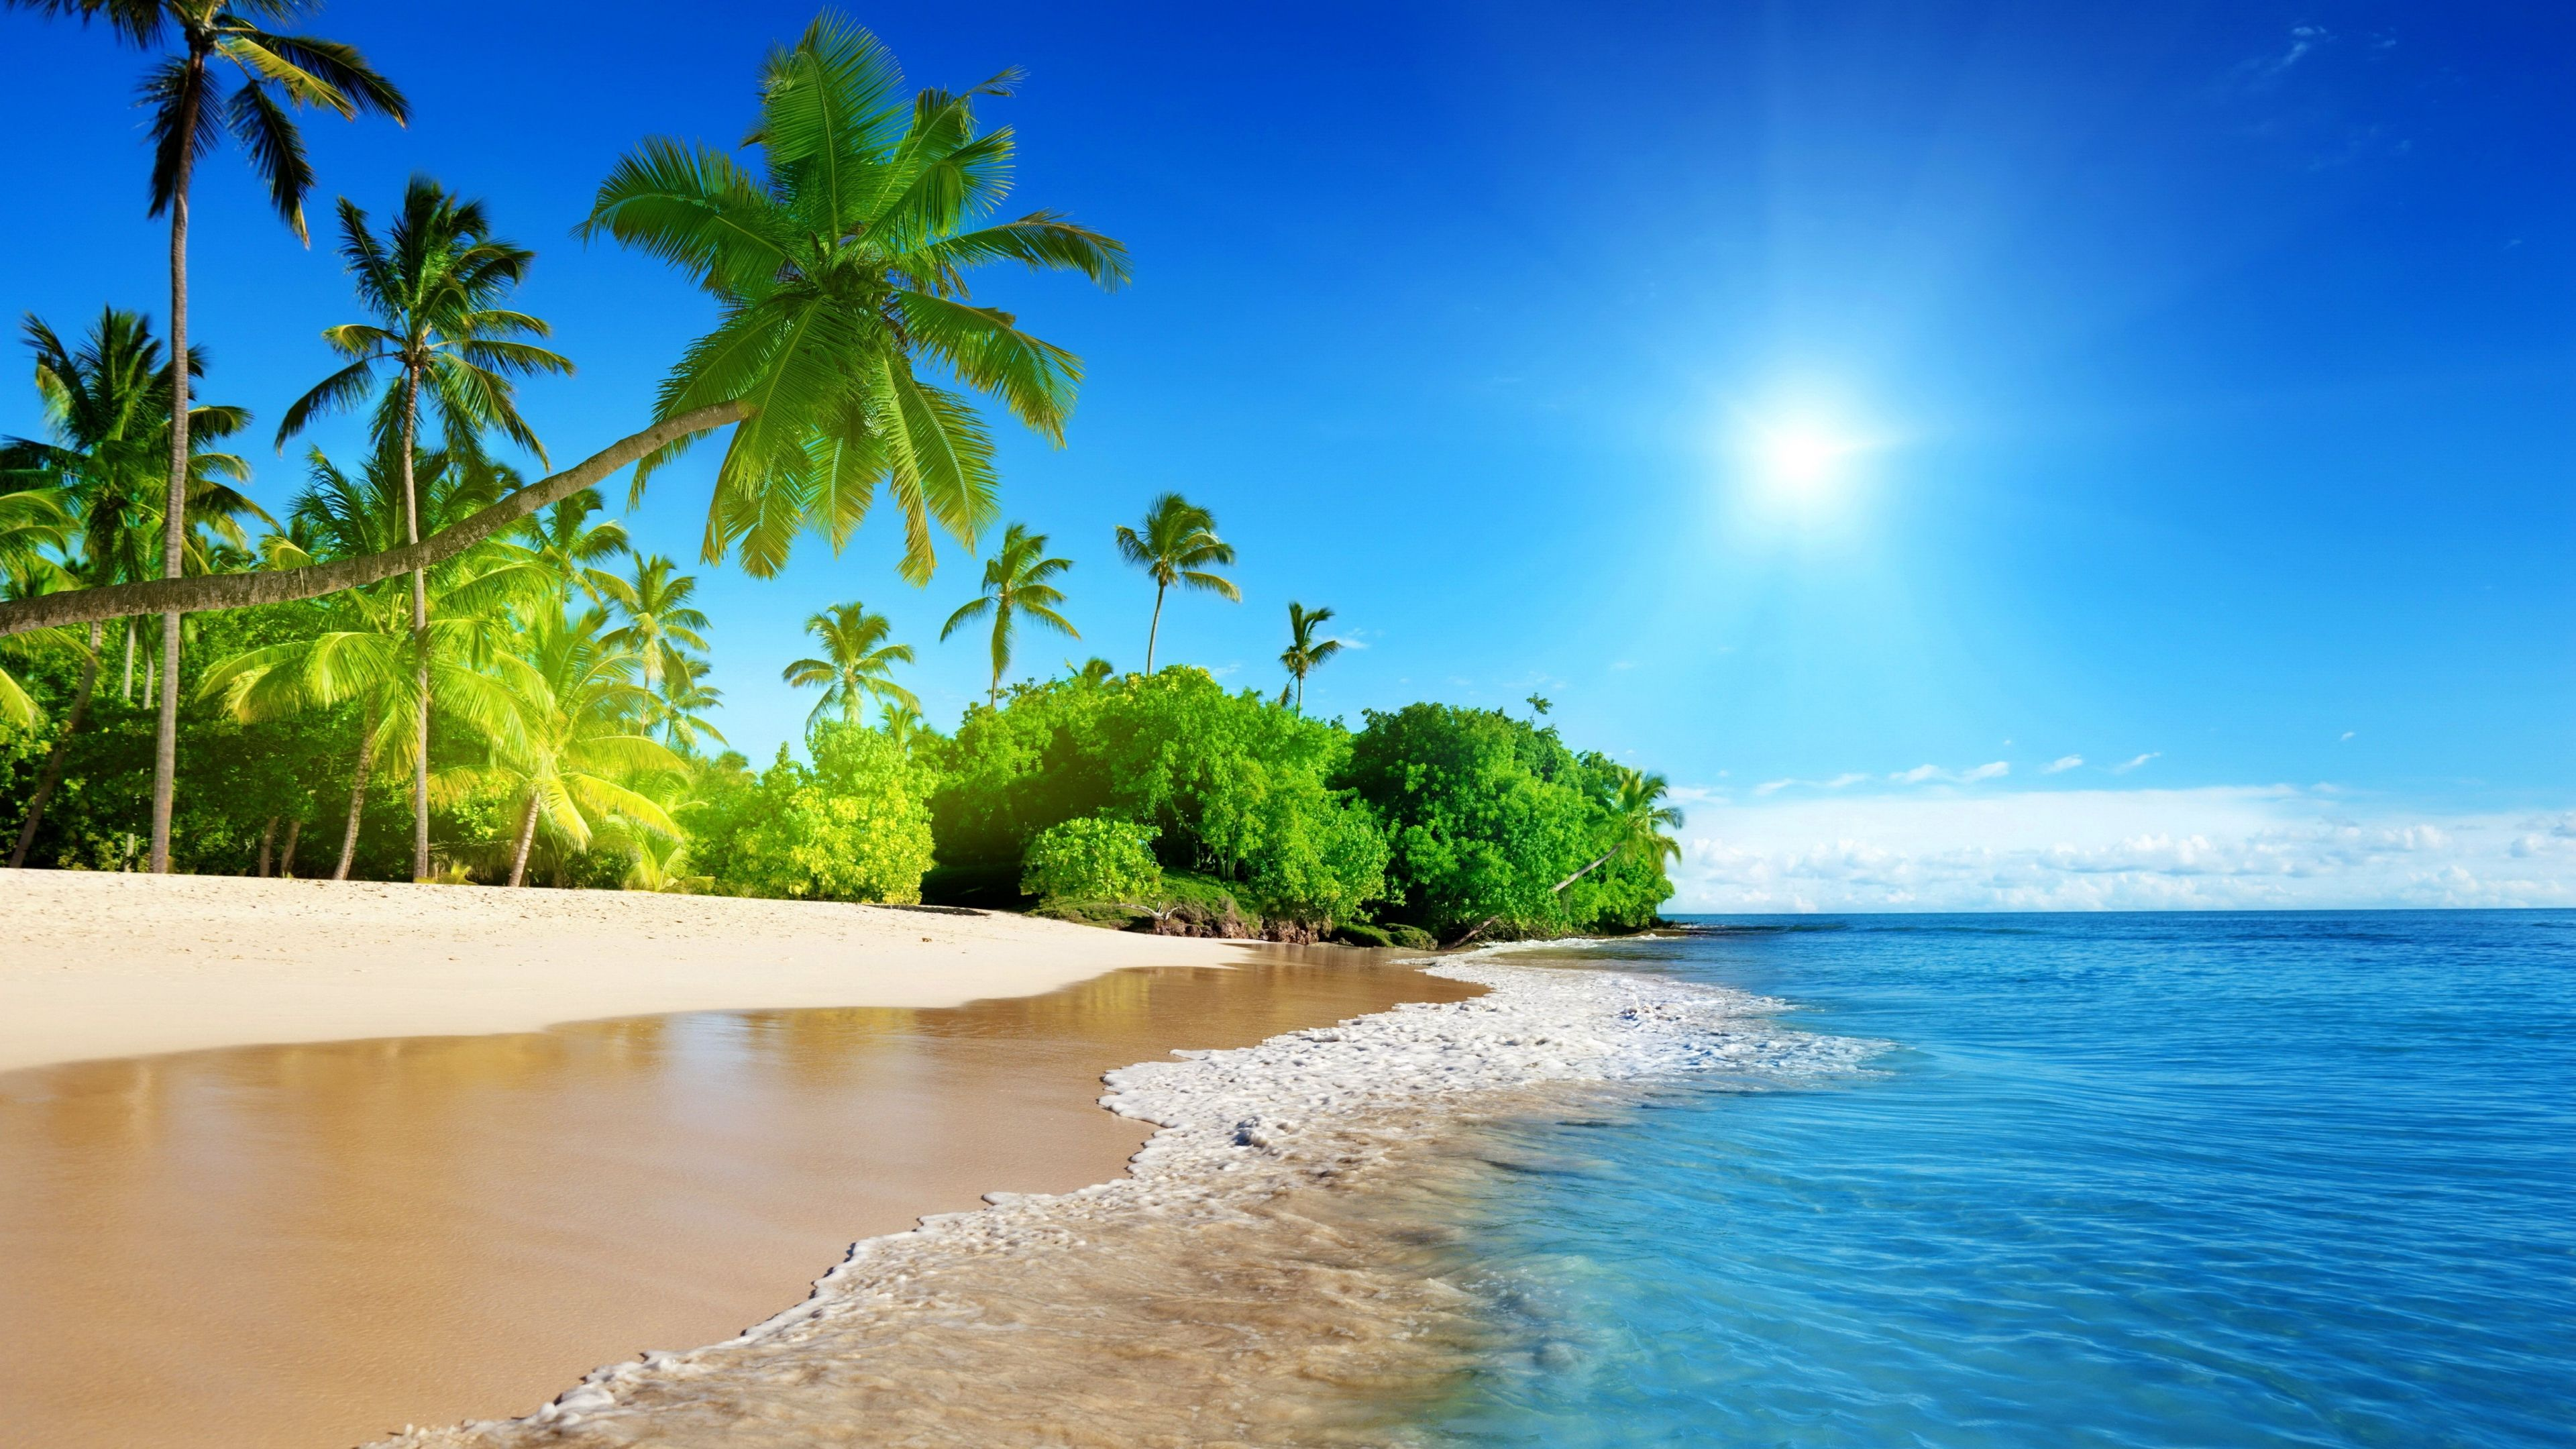 Uhd Beach Wallpapers Top Free Uhd Beach Backgrounds Wallpaperaccess